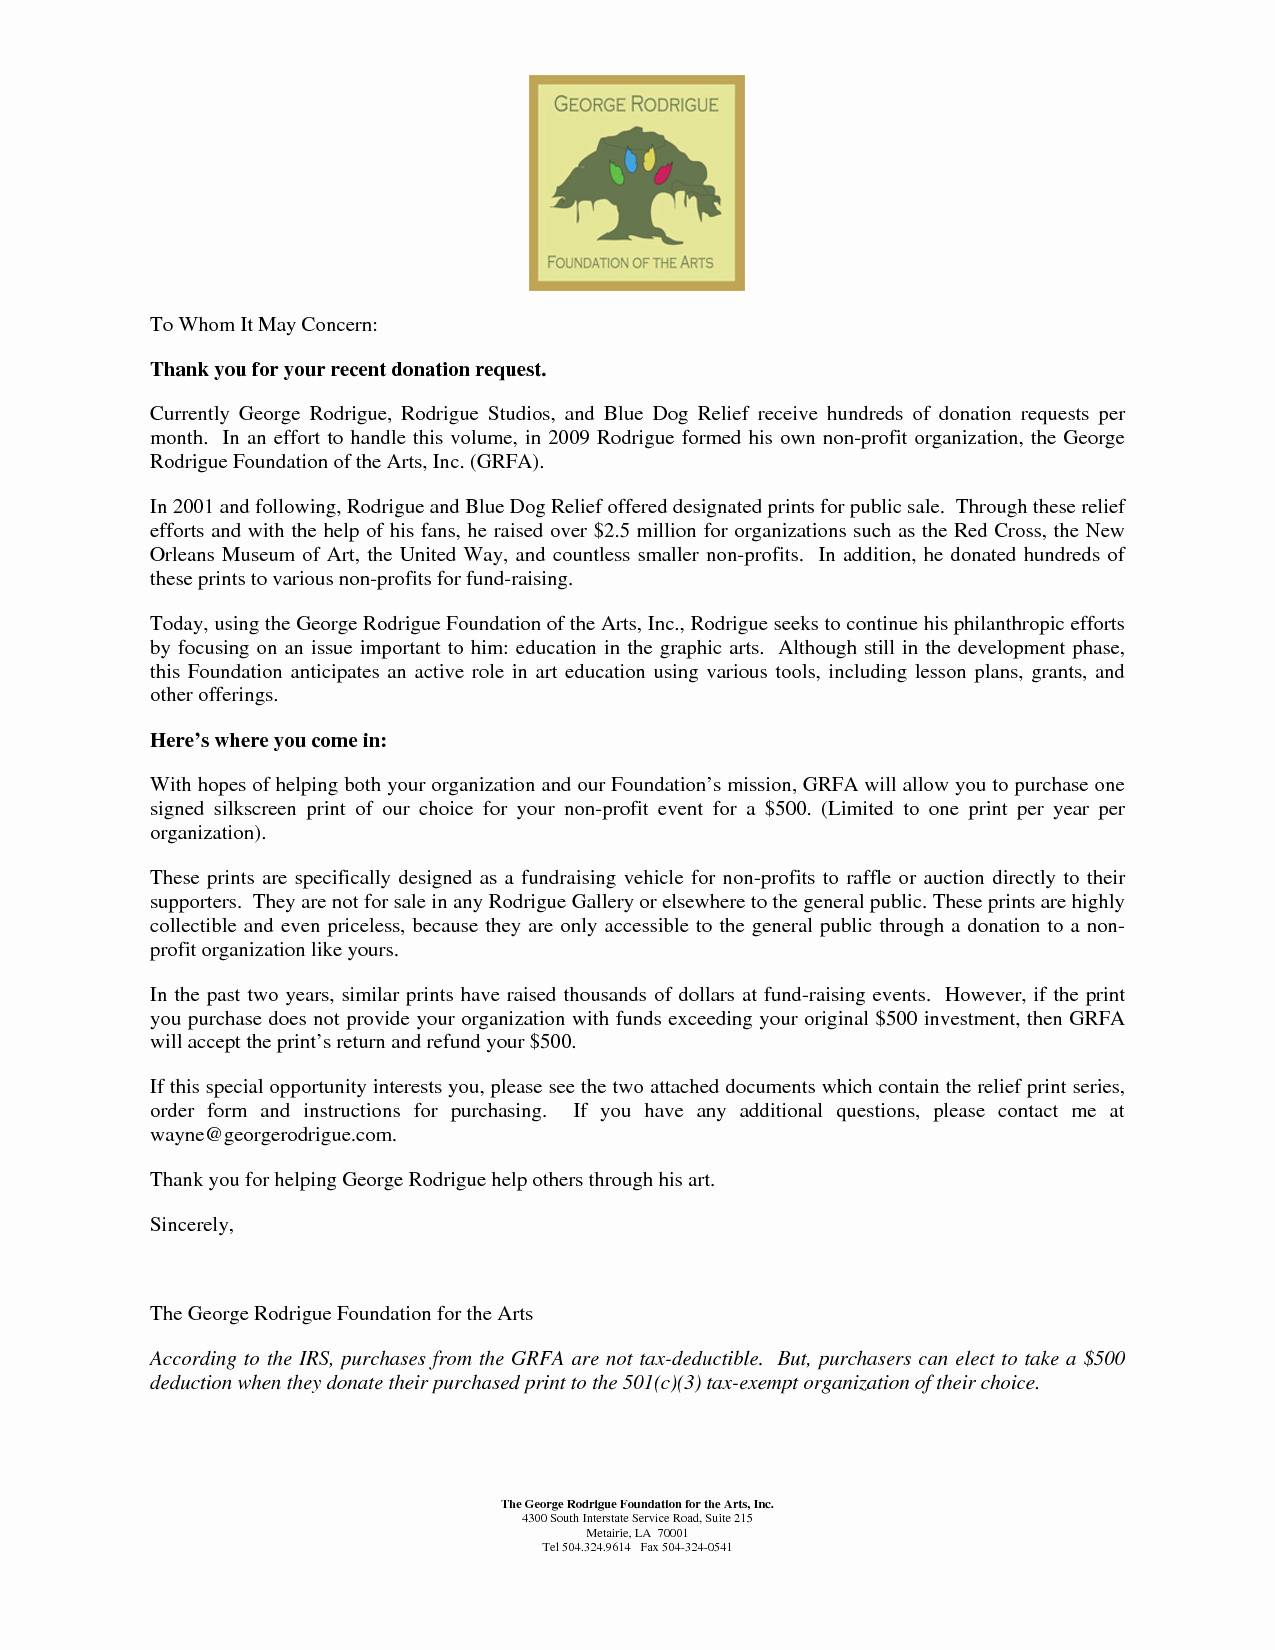 Tax Deductible Donation Thank You Letter Template - Tax Donation Letter Template Awesome Salvation Army Donation